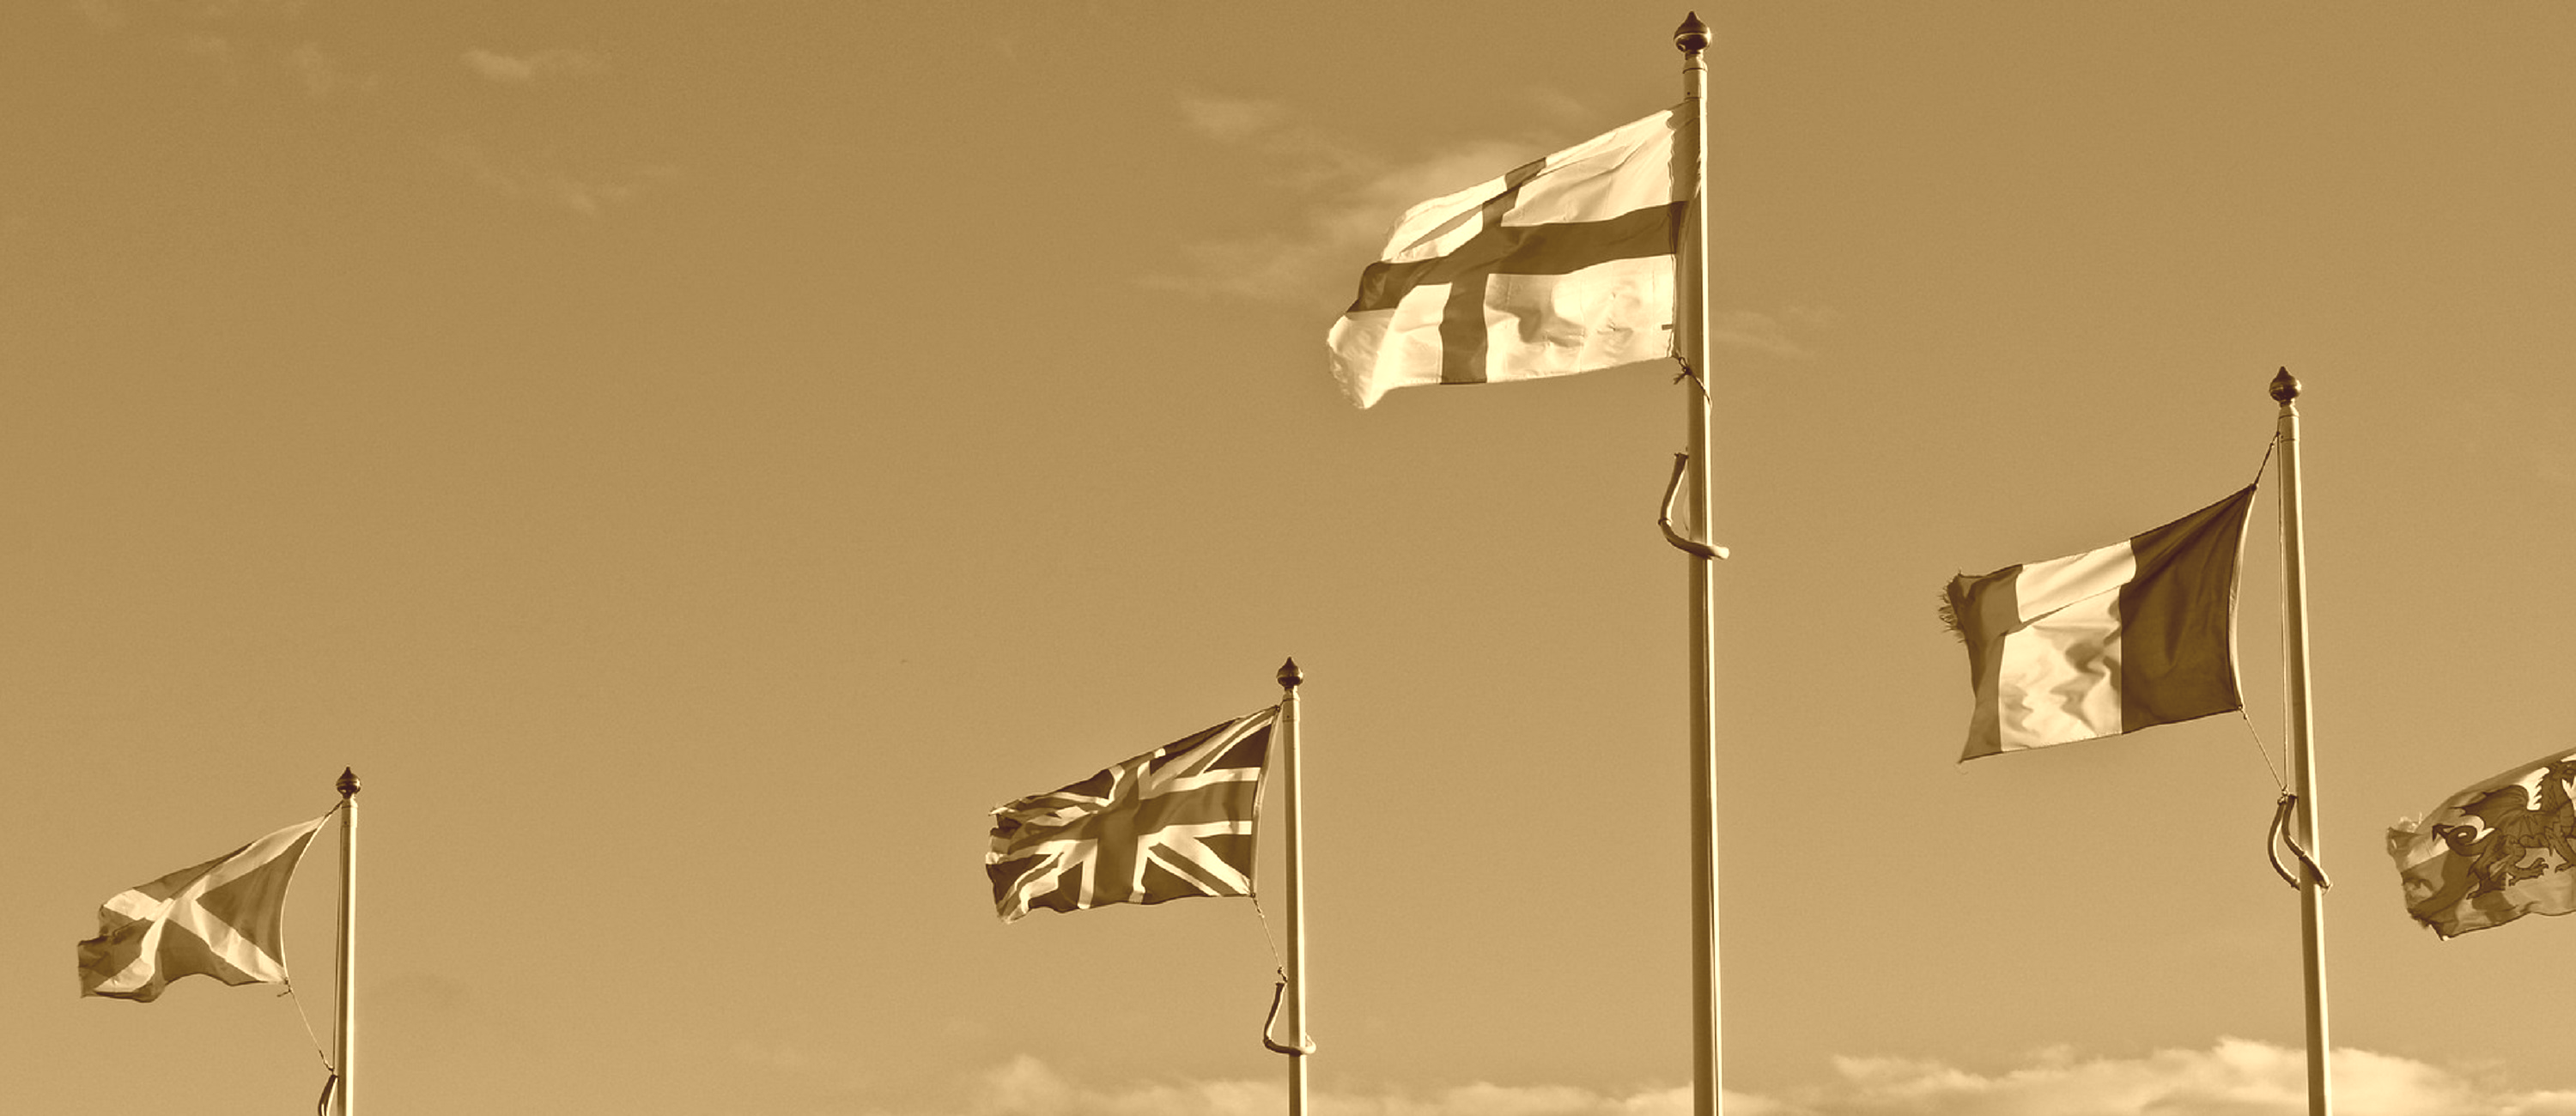 sepia nations regions 3000x1300